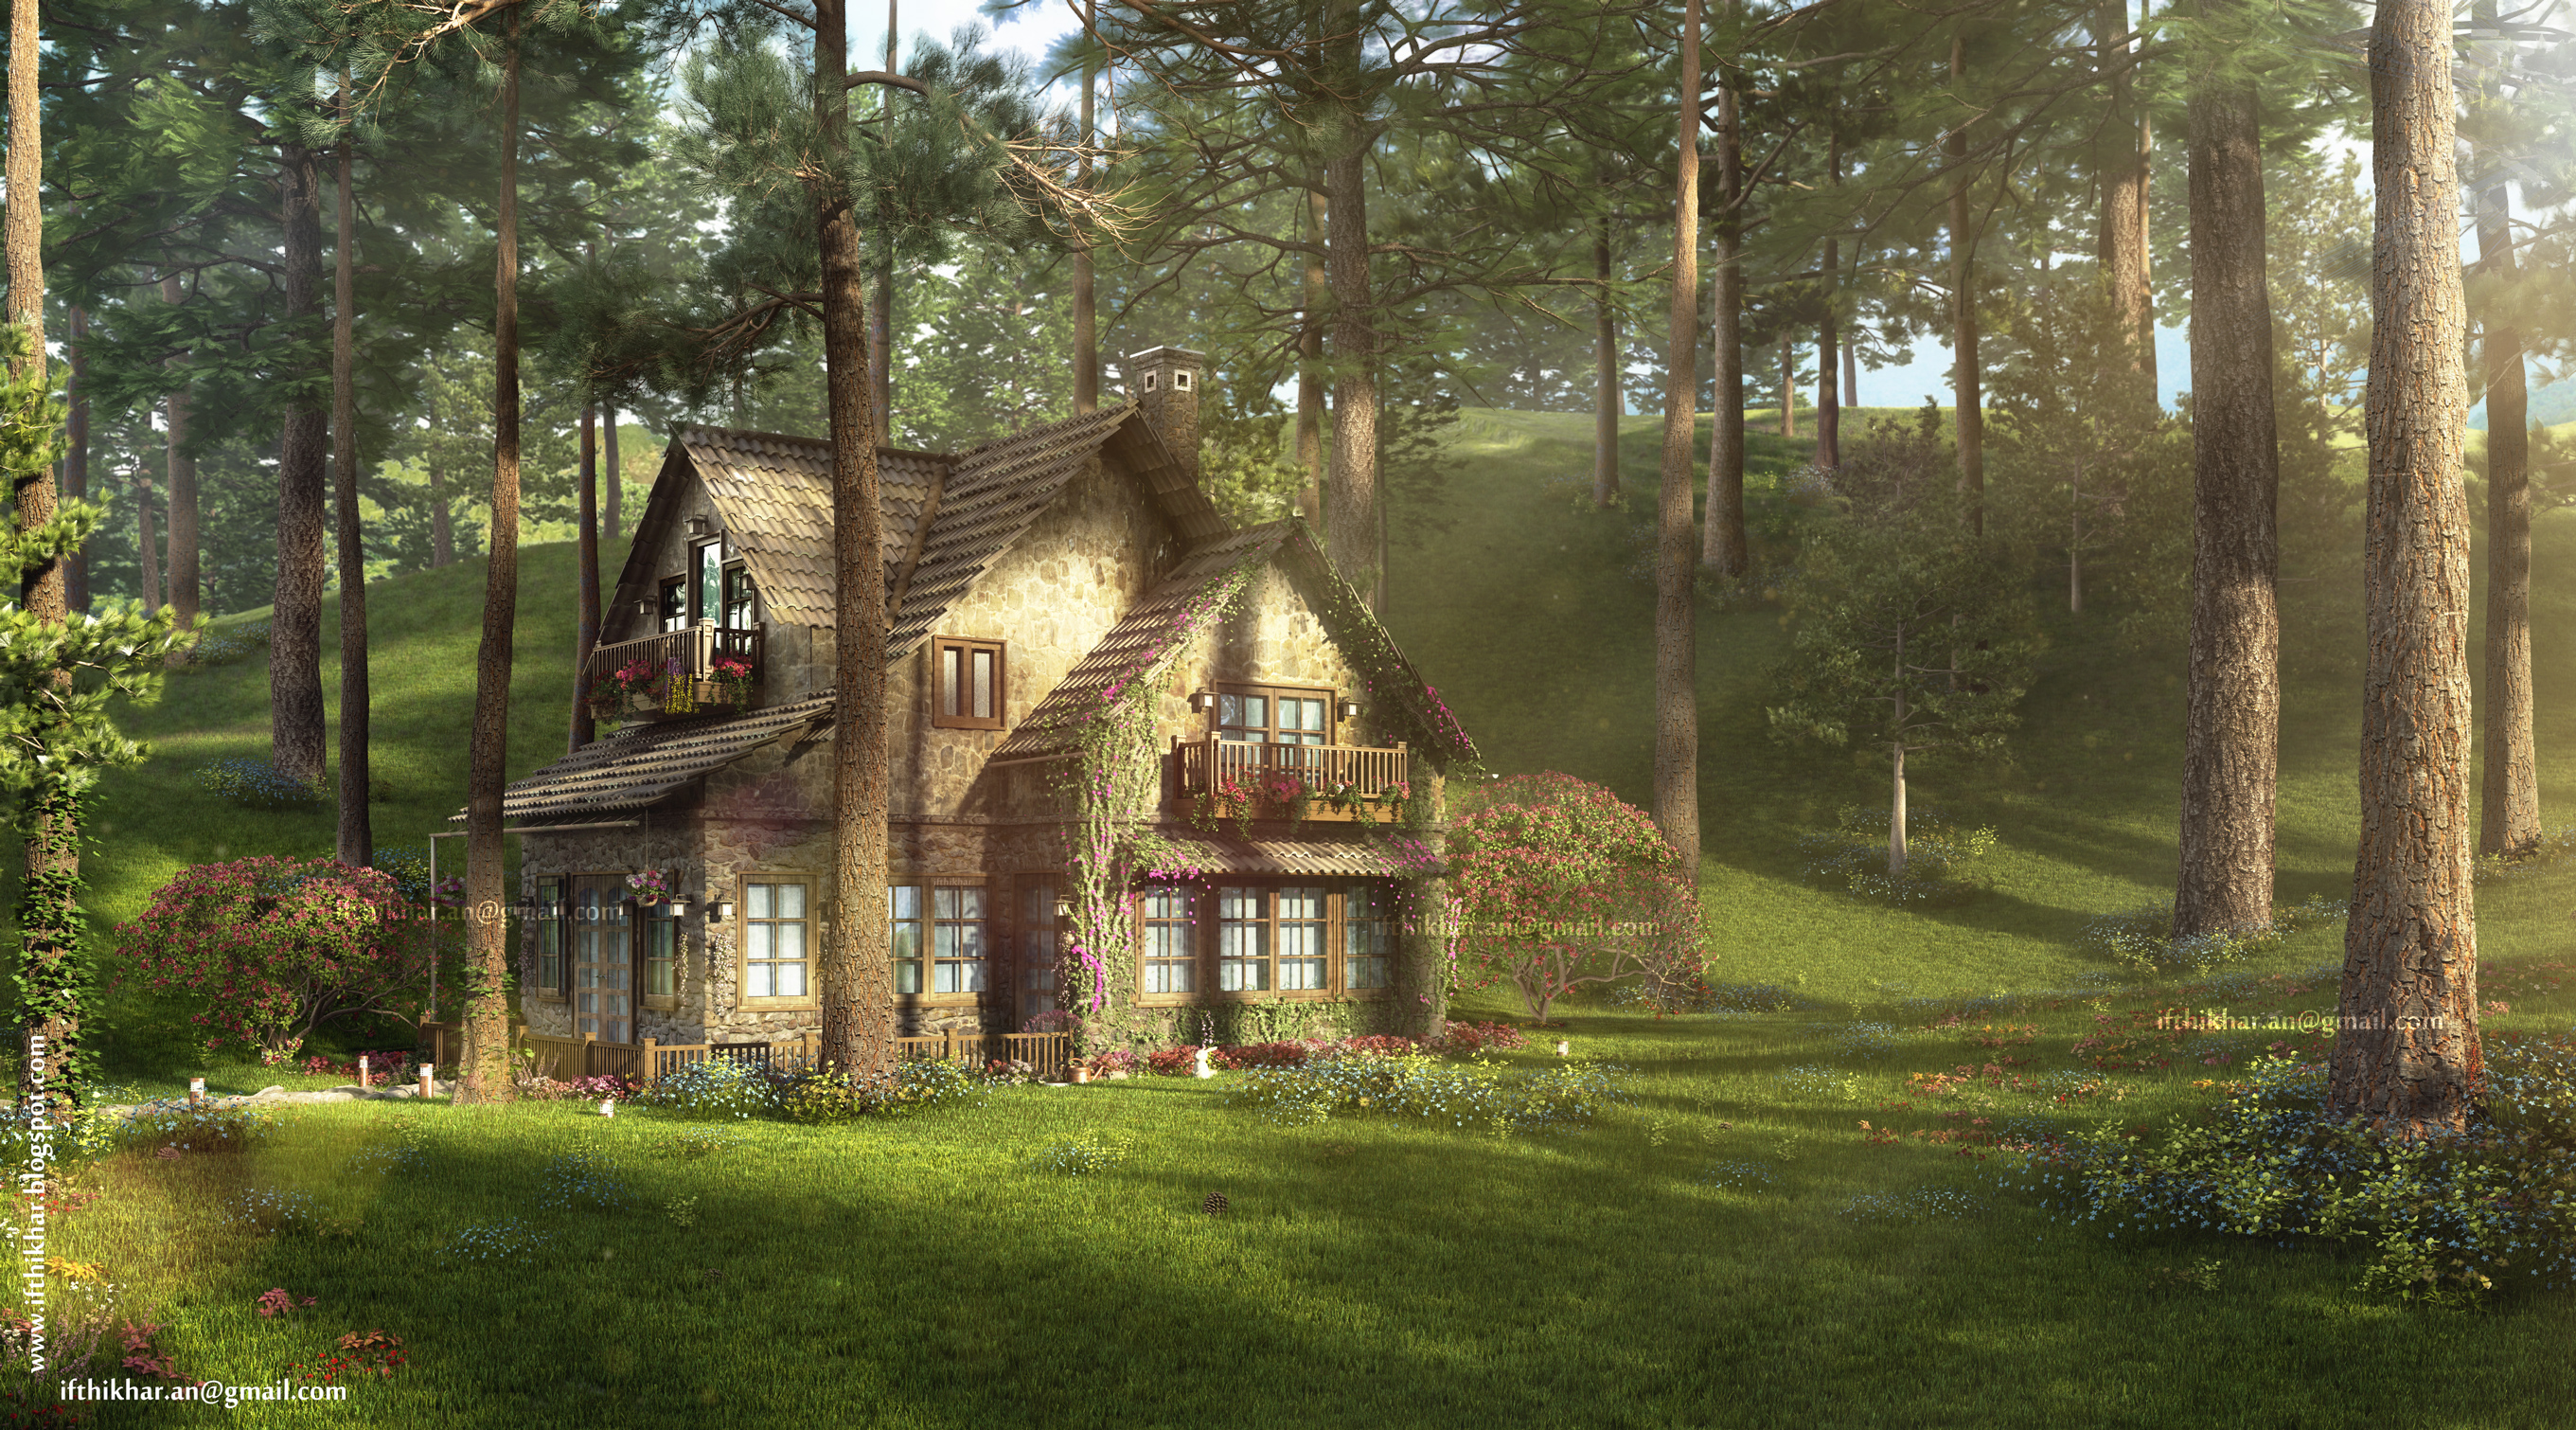 The firefly cottage 3dsmax vray case study cottage architecture ifthikhar an - Cottage image ...